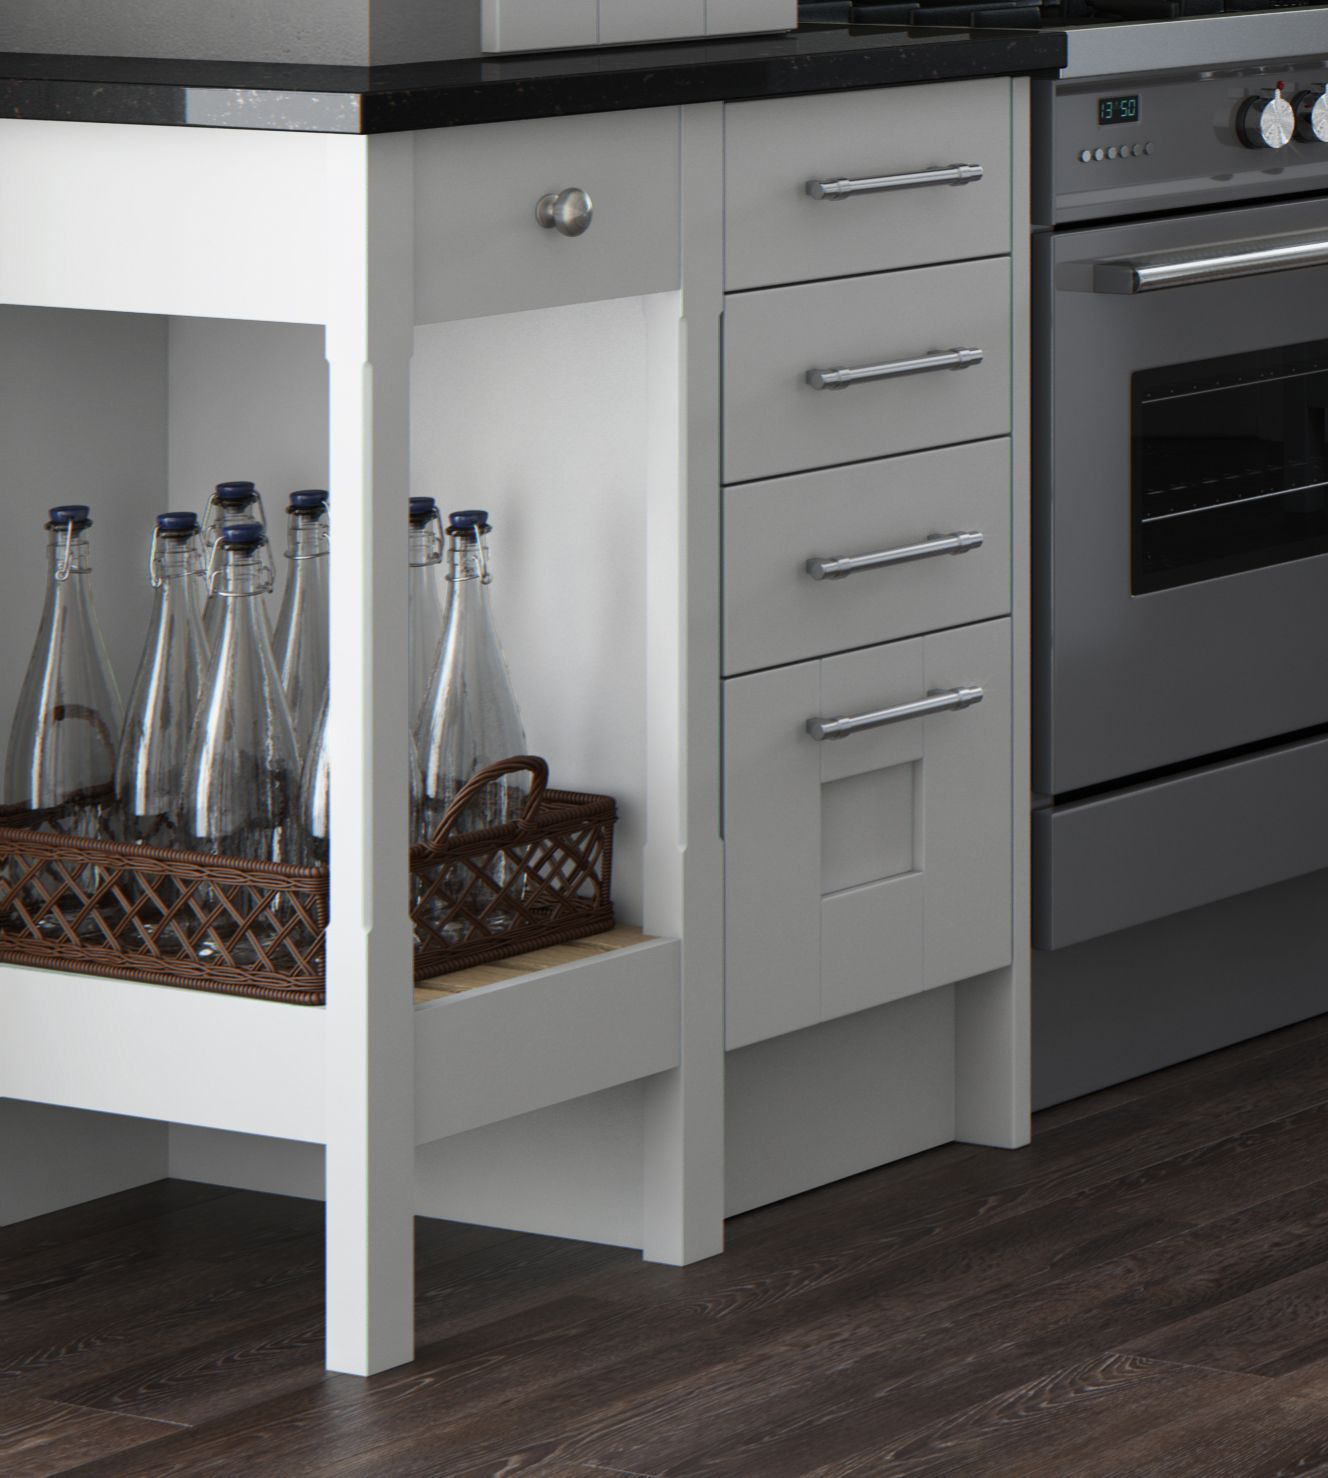 Feature Base End Shelf Mereway Kitchens Town Country  # Muebles Town And Country